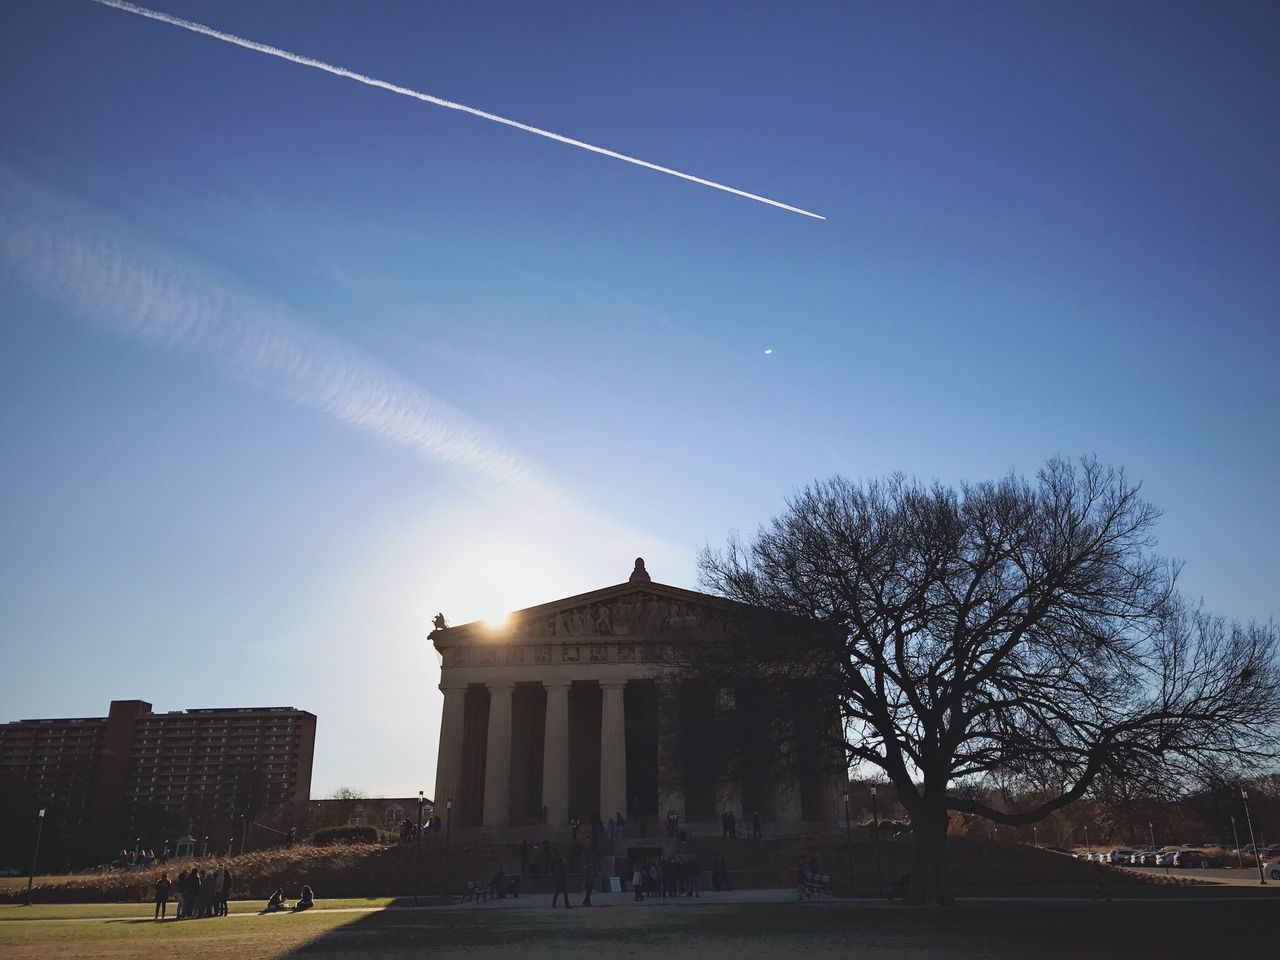 Built Structure Architecture Sky Building Exterior Low Angle View Tree Outdoors Day NASHVILLE,TENNESSEE Nashville Nashville TN Architecture Illuminated Parthenon